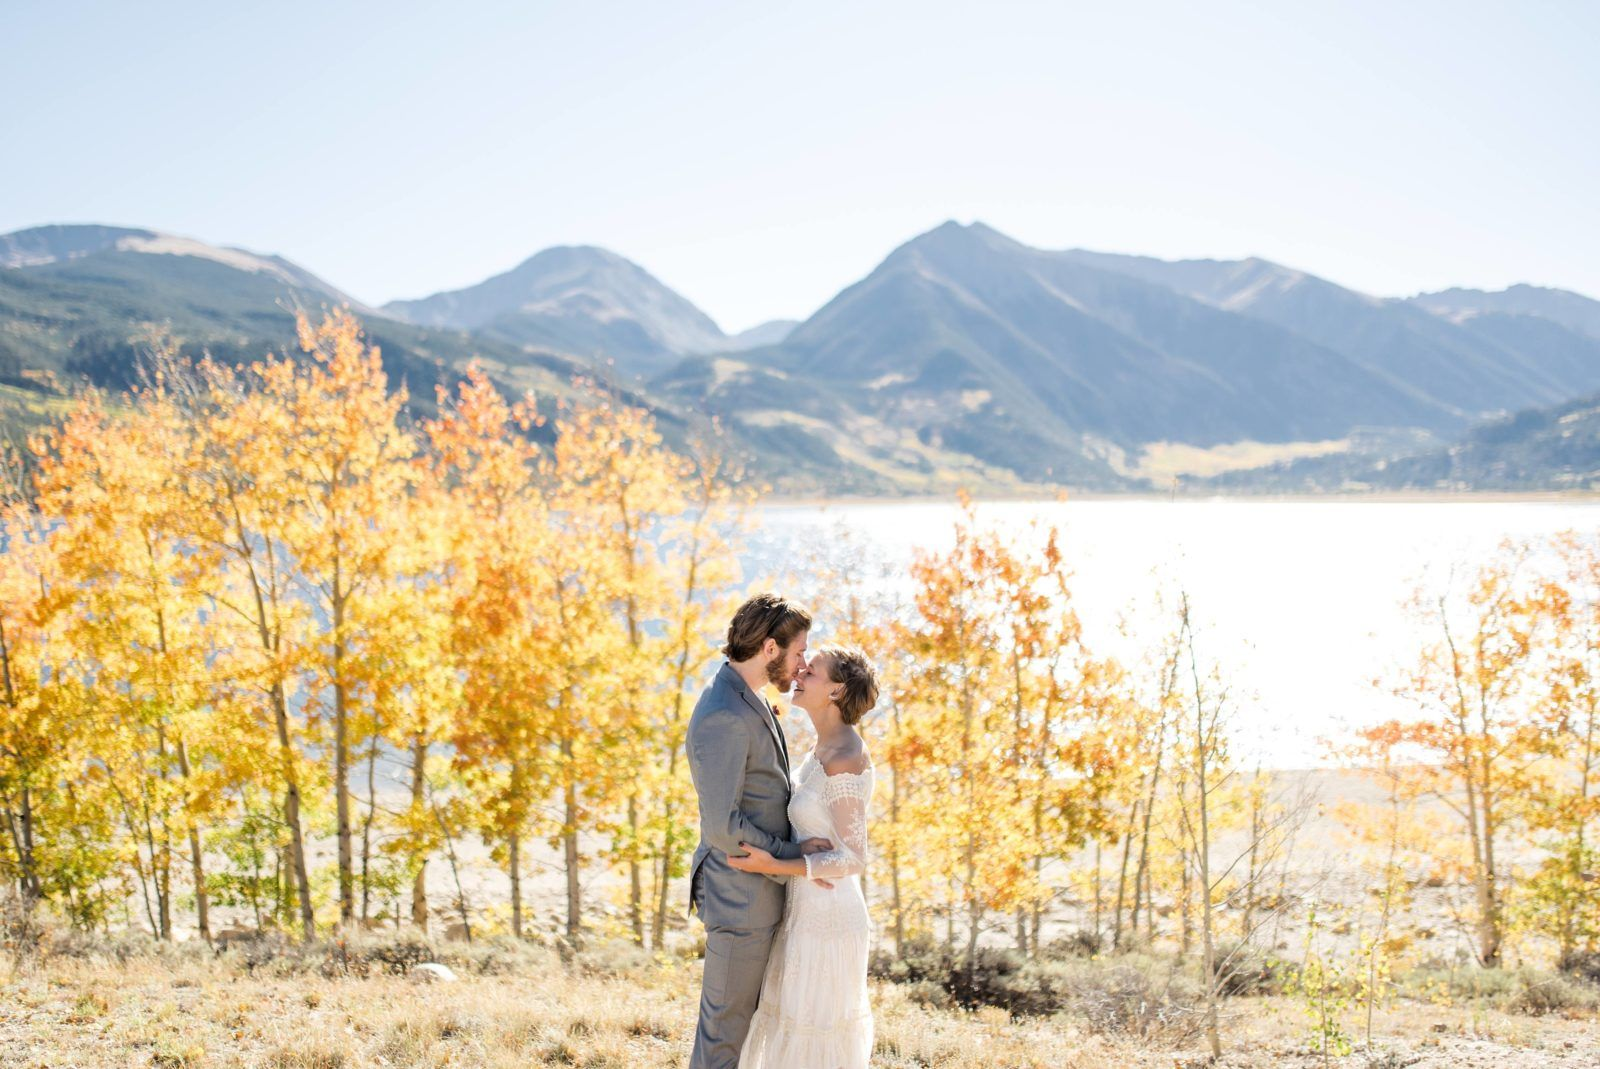 Best Places to Elope in Colorado Mountain wedding venues